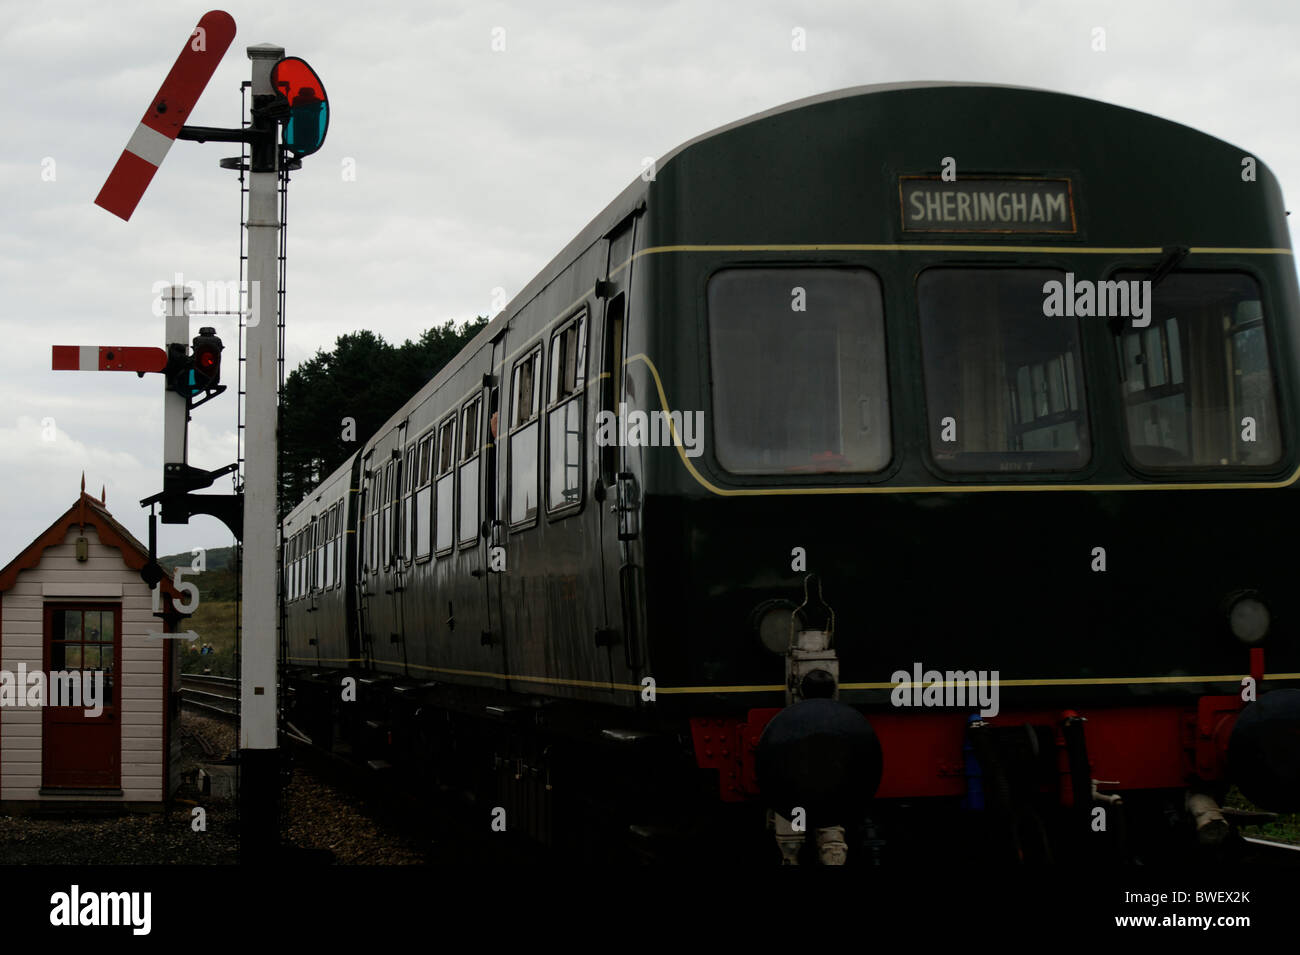 DMU class 101 no:101681 leaving Weybourne for Sheringham North Norfolk Railway September 2010 - Stock Image